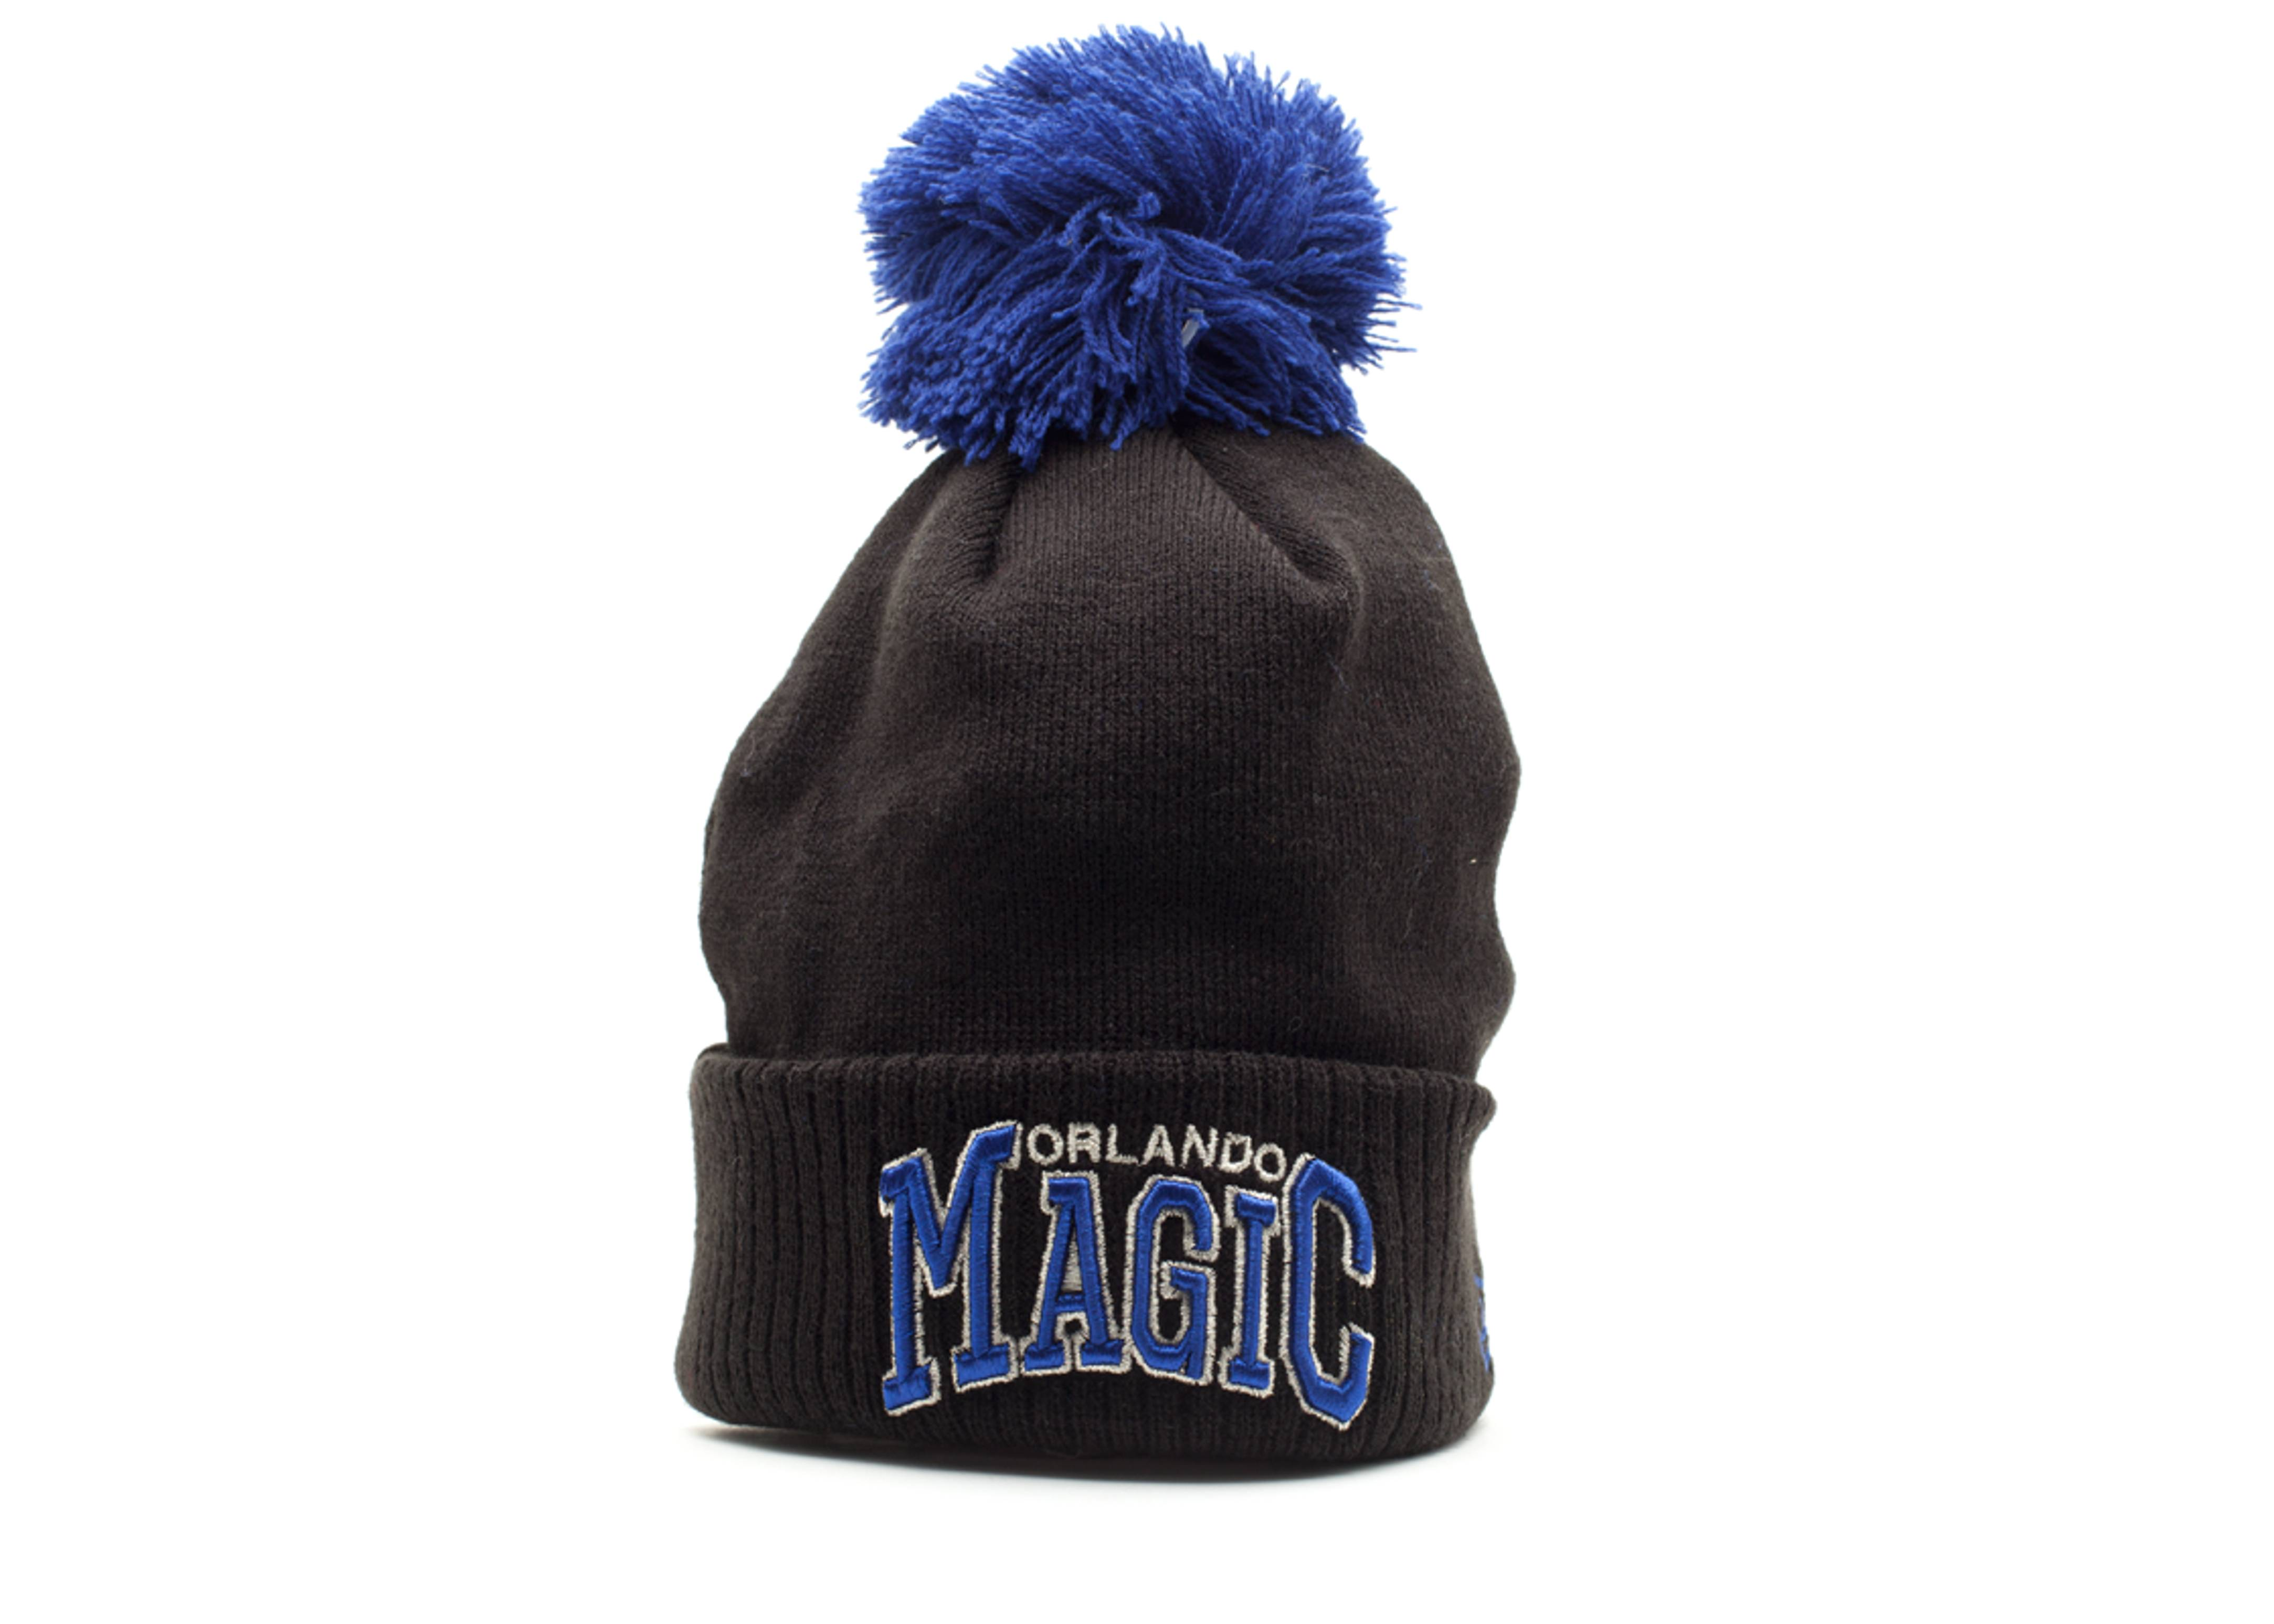 orland magic cuffed pom knit beanie